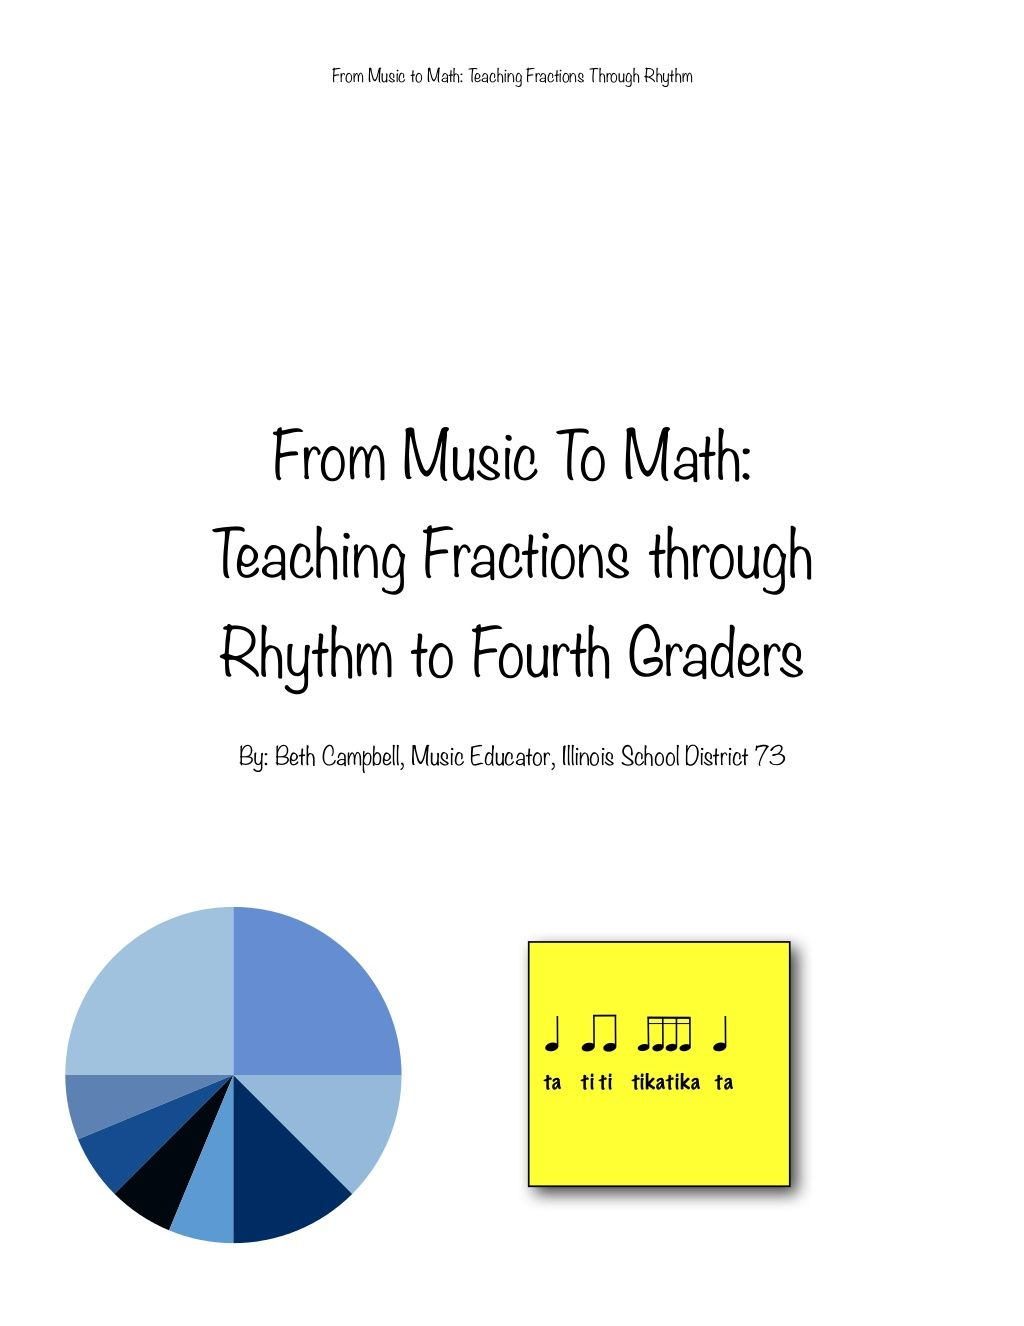 From Music To Math Teaching Fractions Through Rhythm To